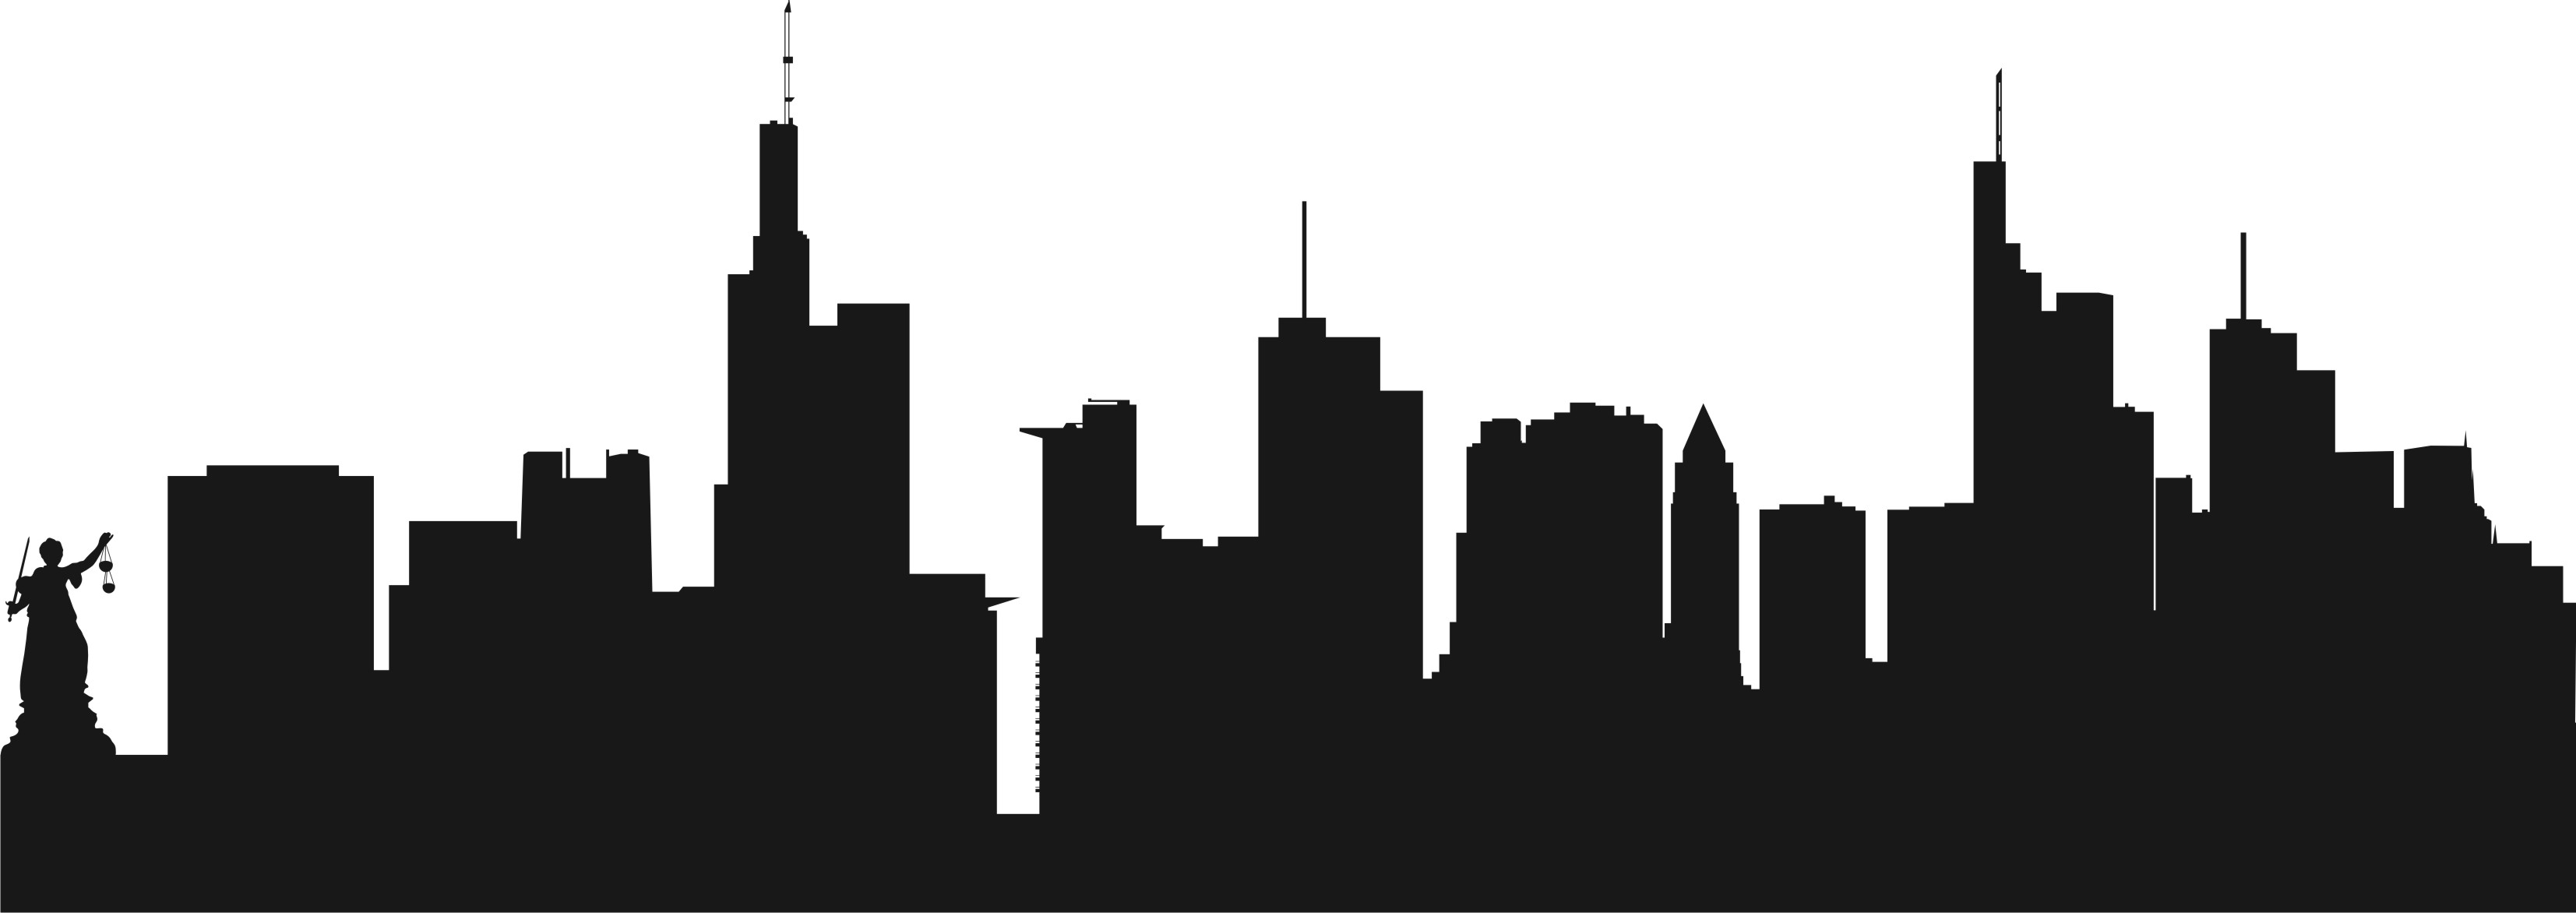 city skylines wall art vinyl sticker decal home decor ebay. Black Bedroom Furniture Sets. Home Design Ideas